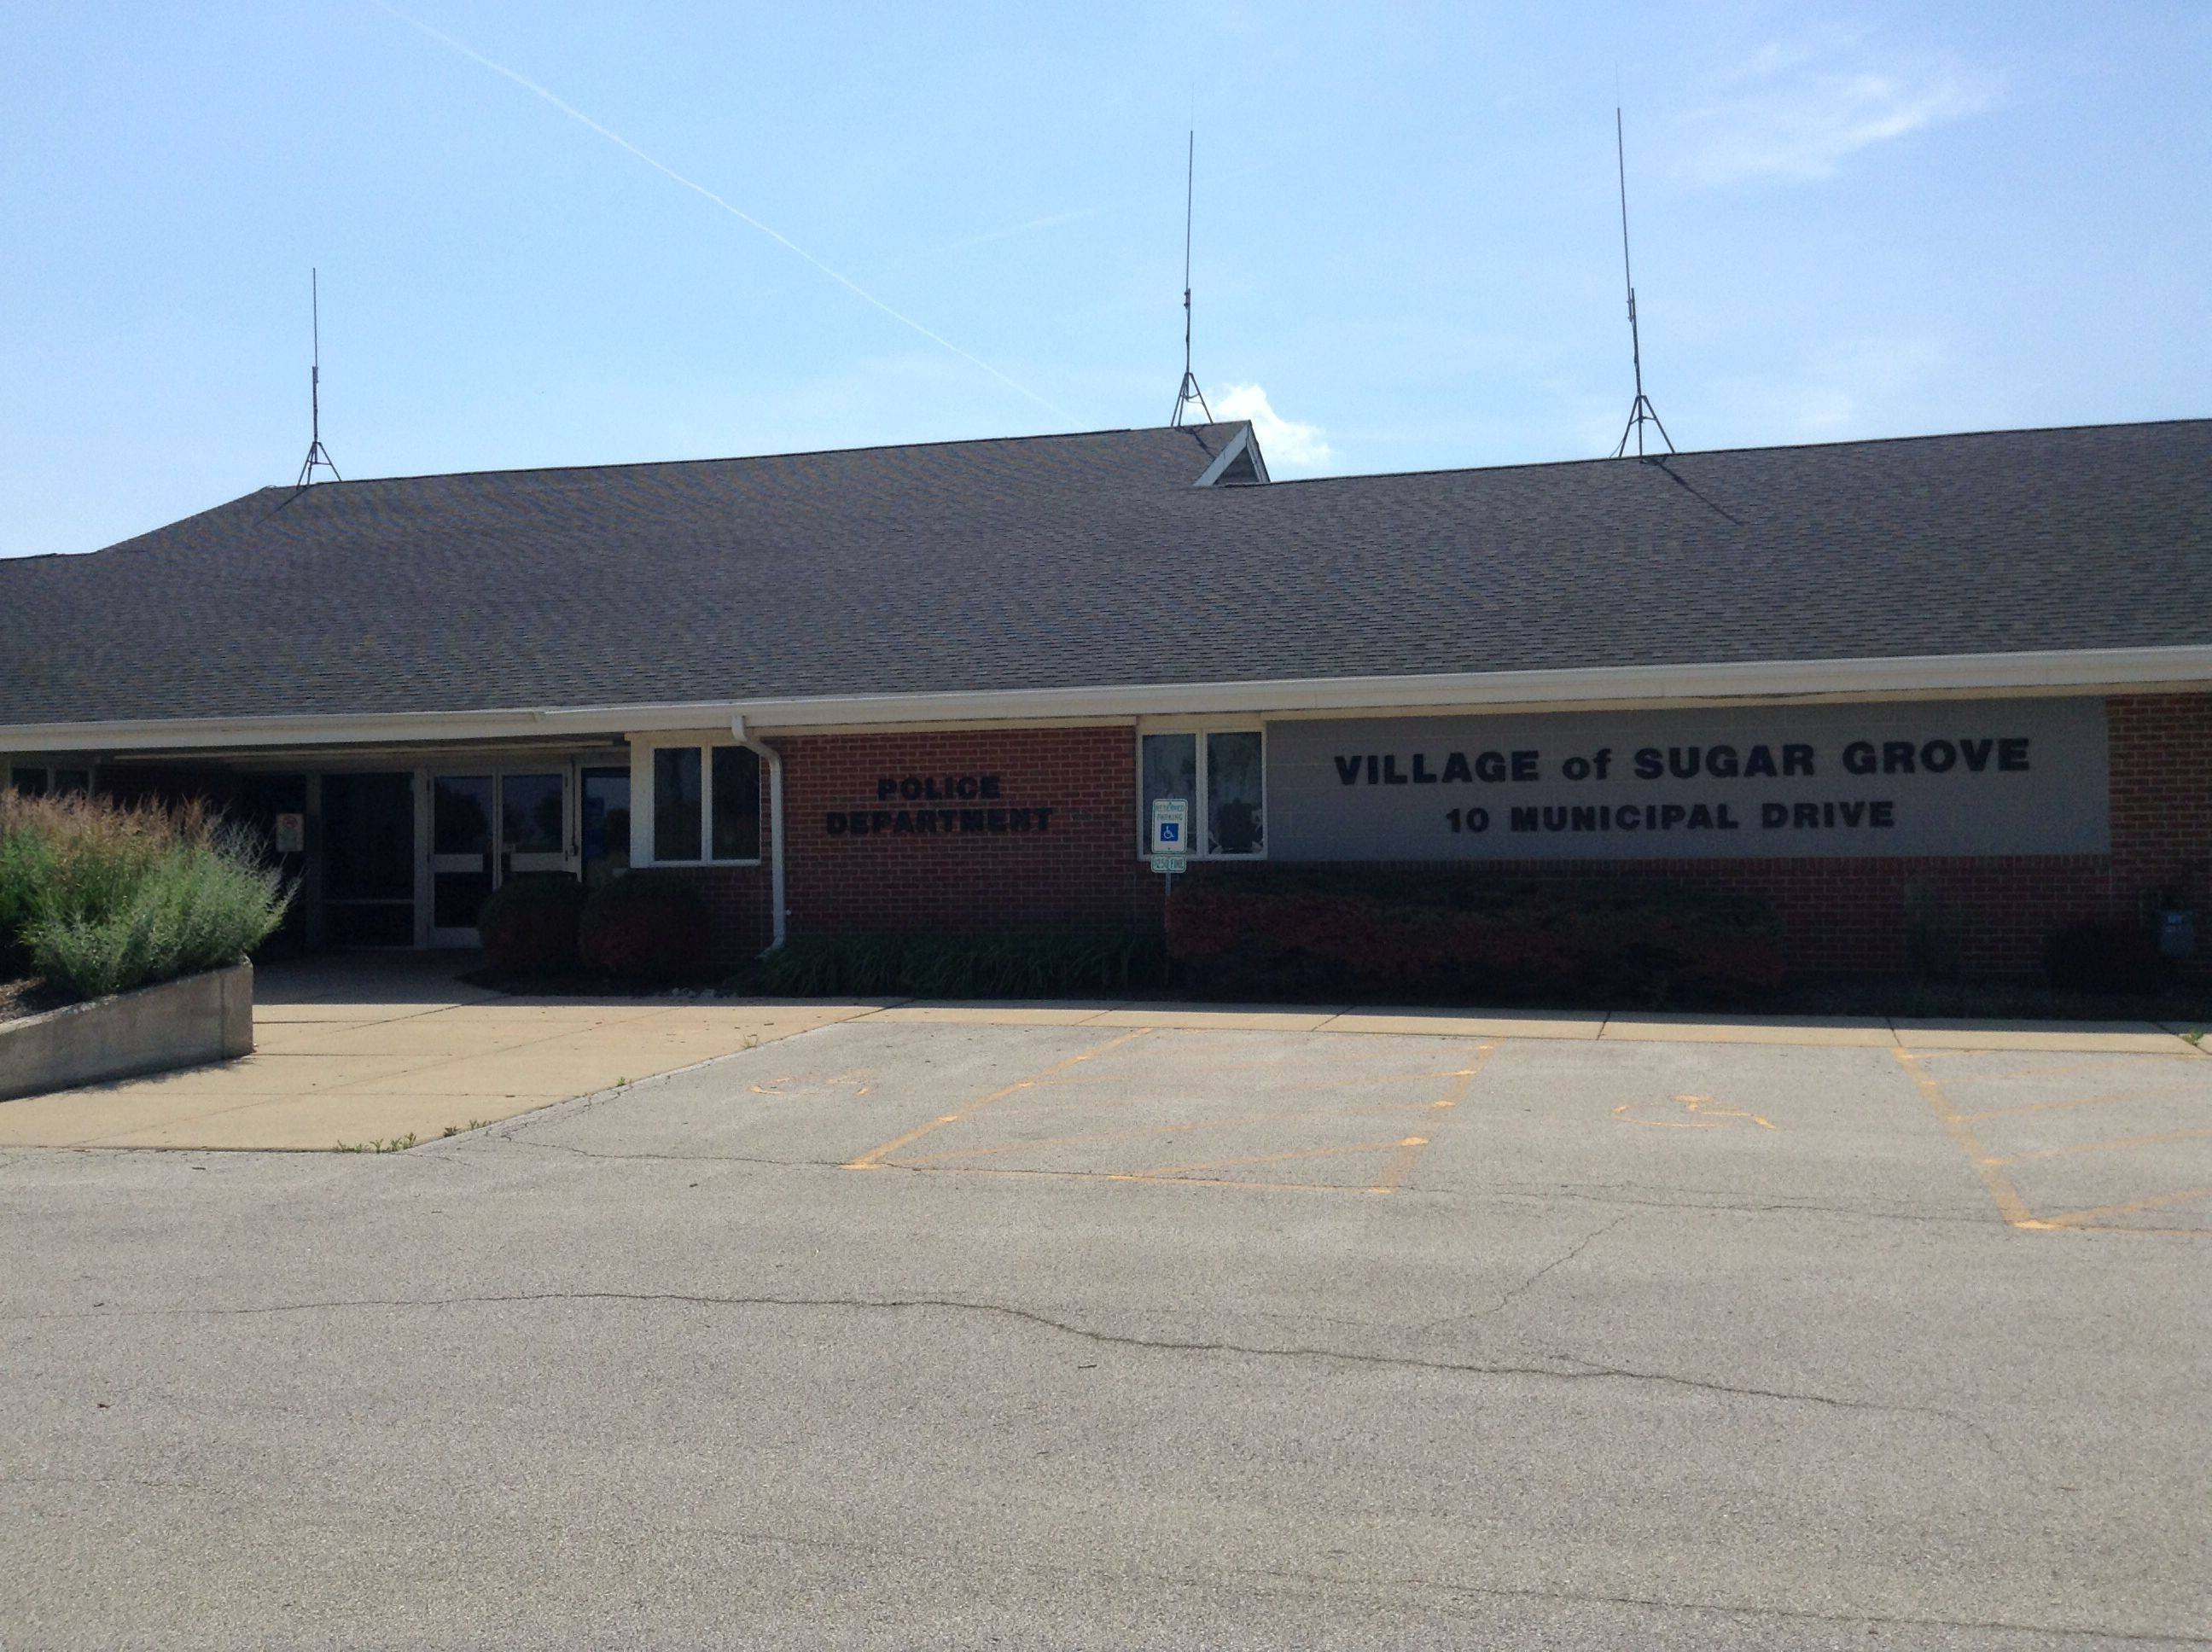 The current Sugar Grove village hall is at 10 S. Municipal Drive, but the village intends to move its finance and administrative offices to two buildings it bought down the street. The police department would then expand in the existing village hall.